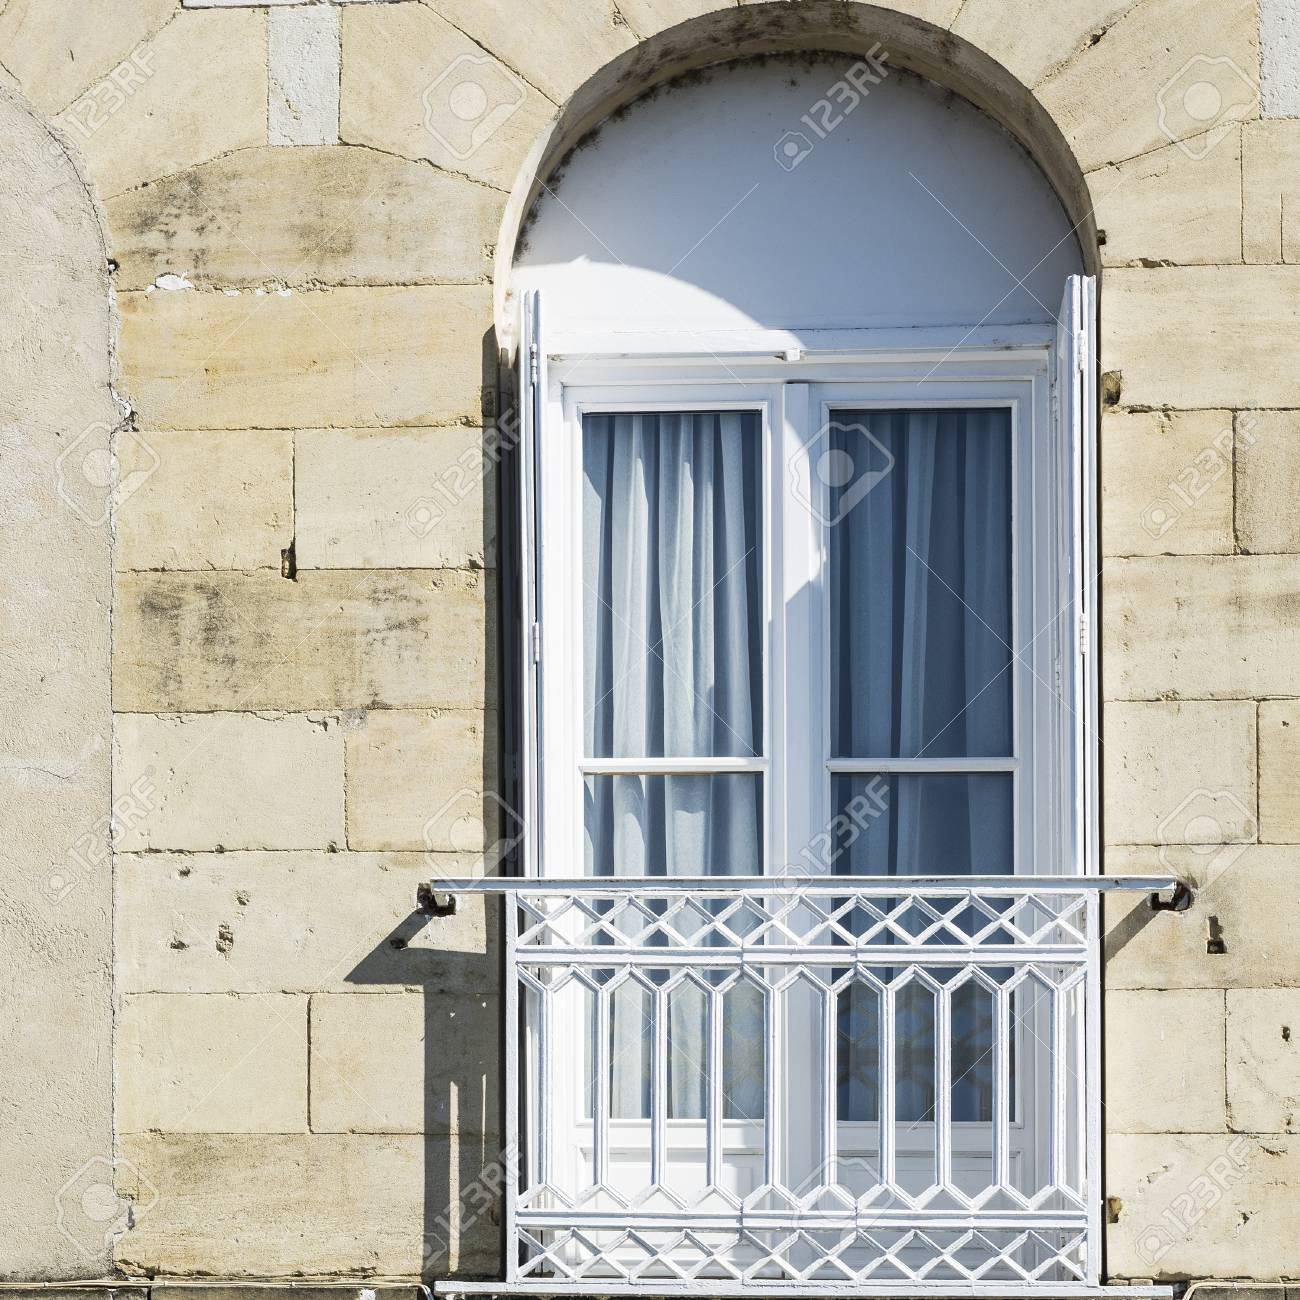 Classic european architecture in France  French window with light